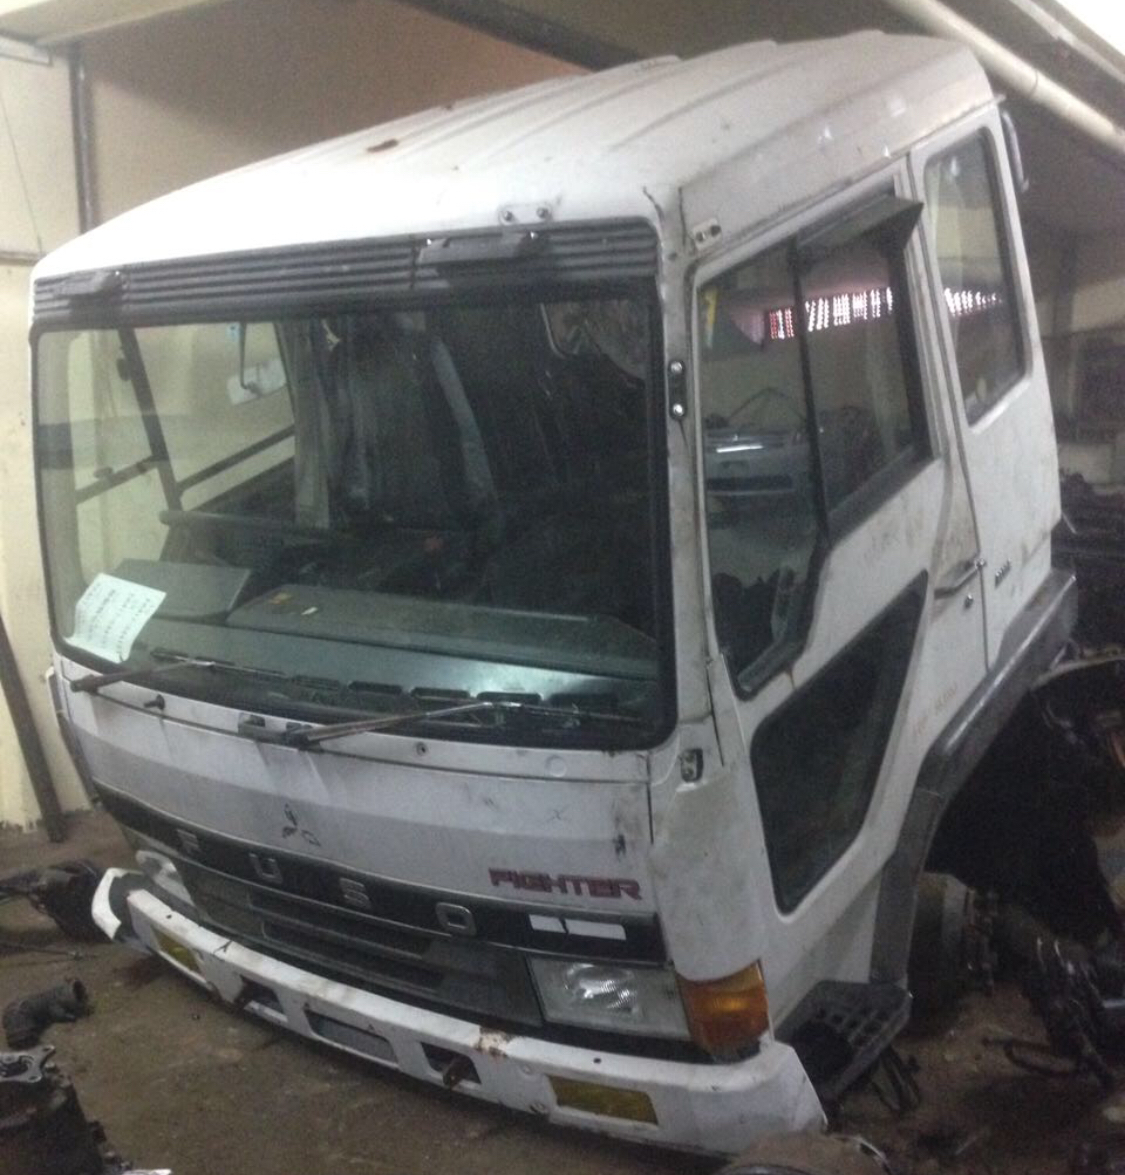 Cabin for fuso figher